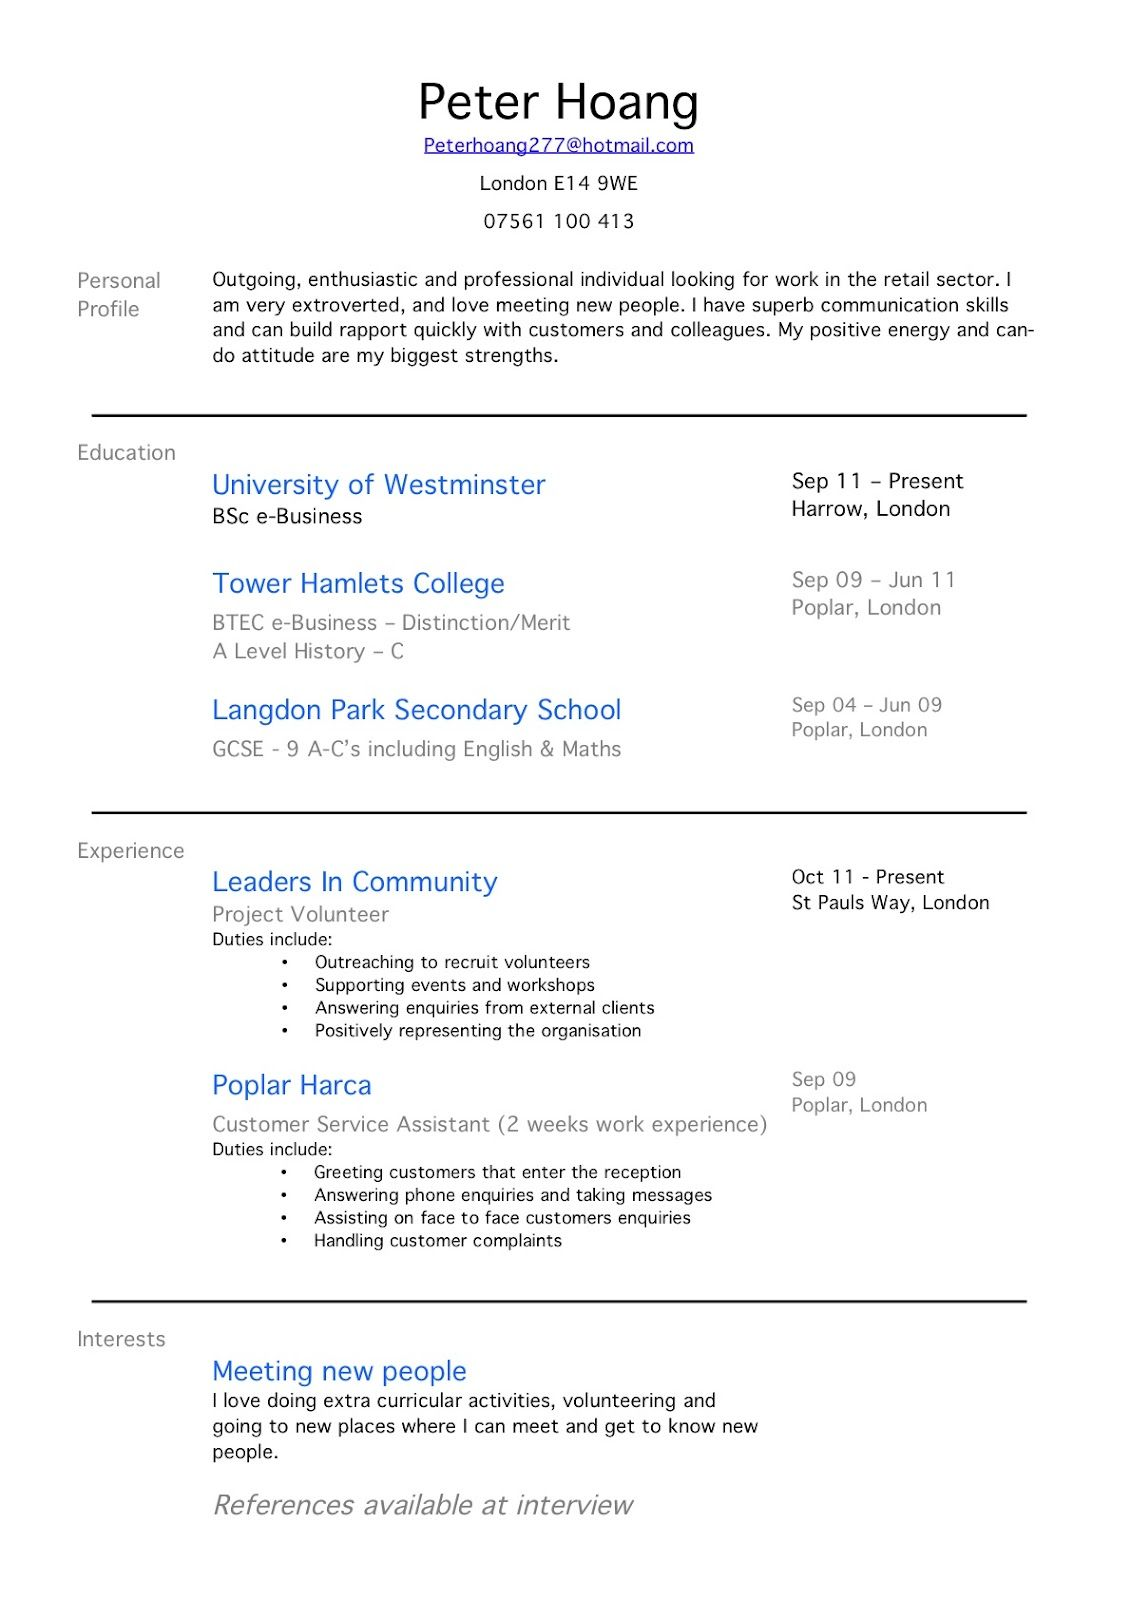 Resume Templates With No Experience How To Write A Teacher Resume With No Experience  Resume Examples